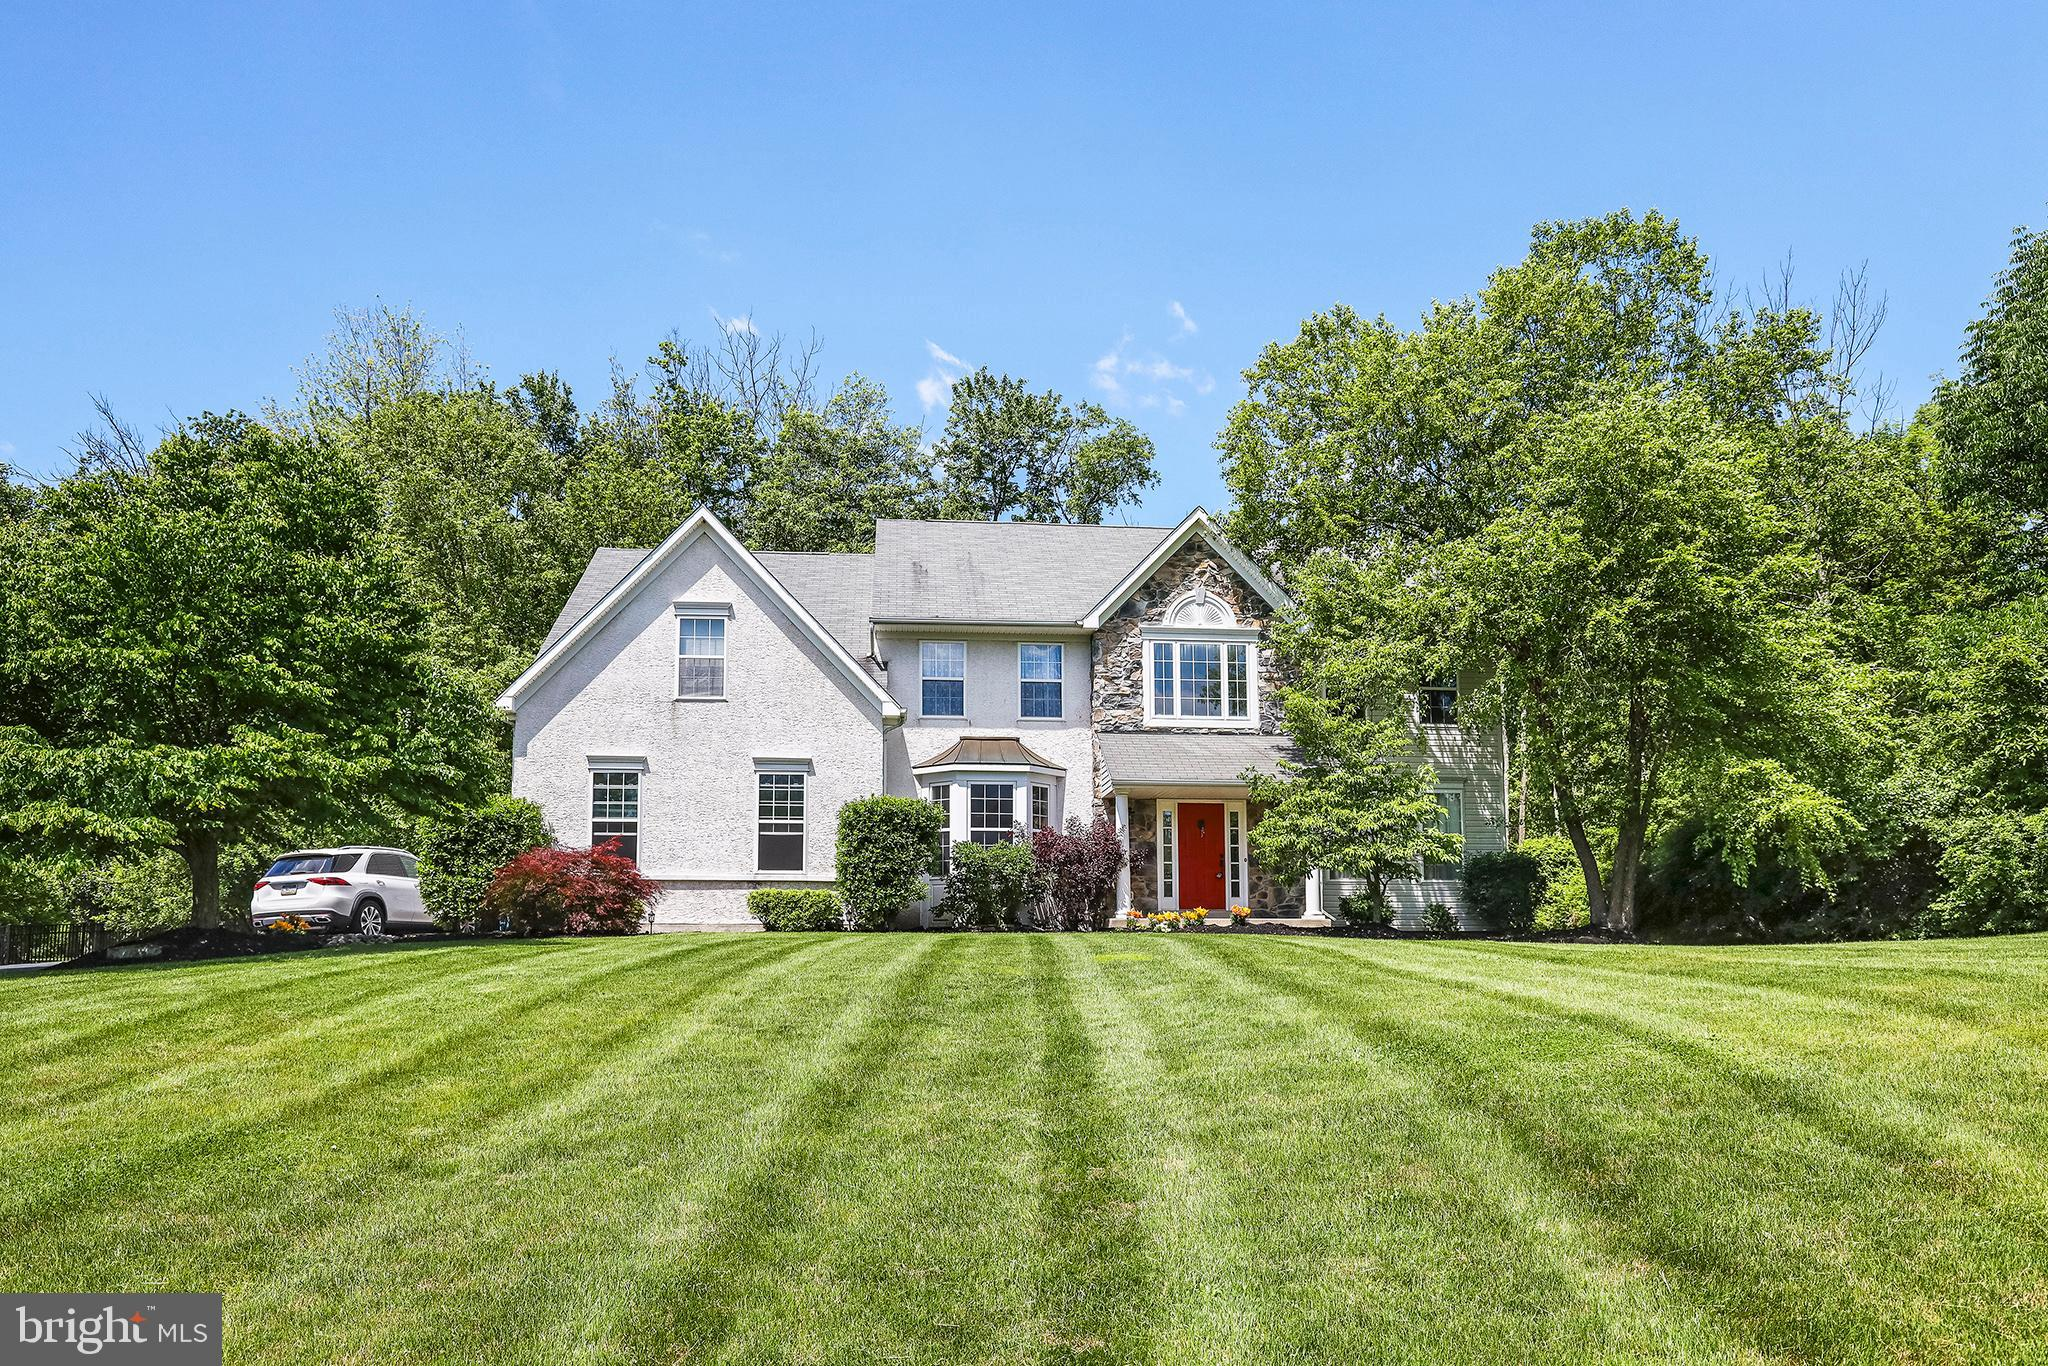 413 FOREST LANE, NORTH WALES, PA 19454